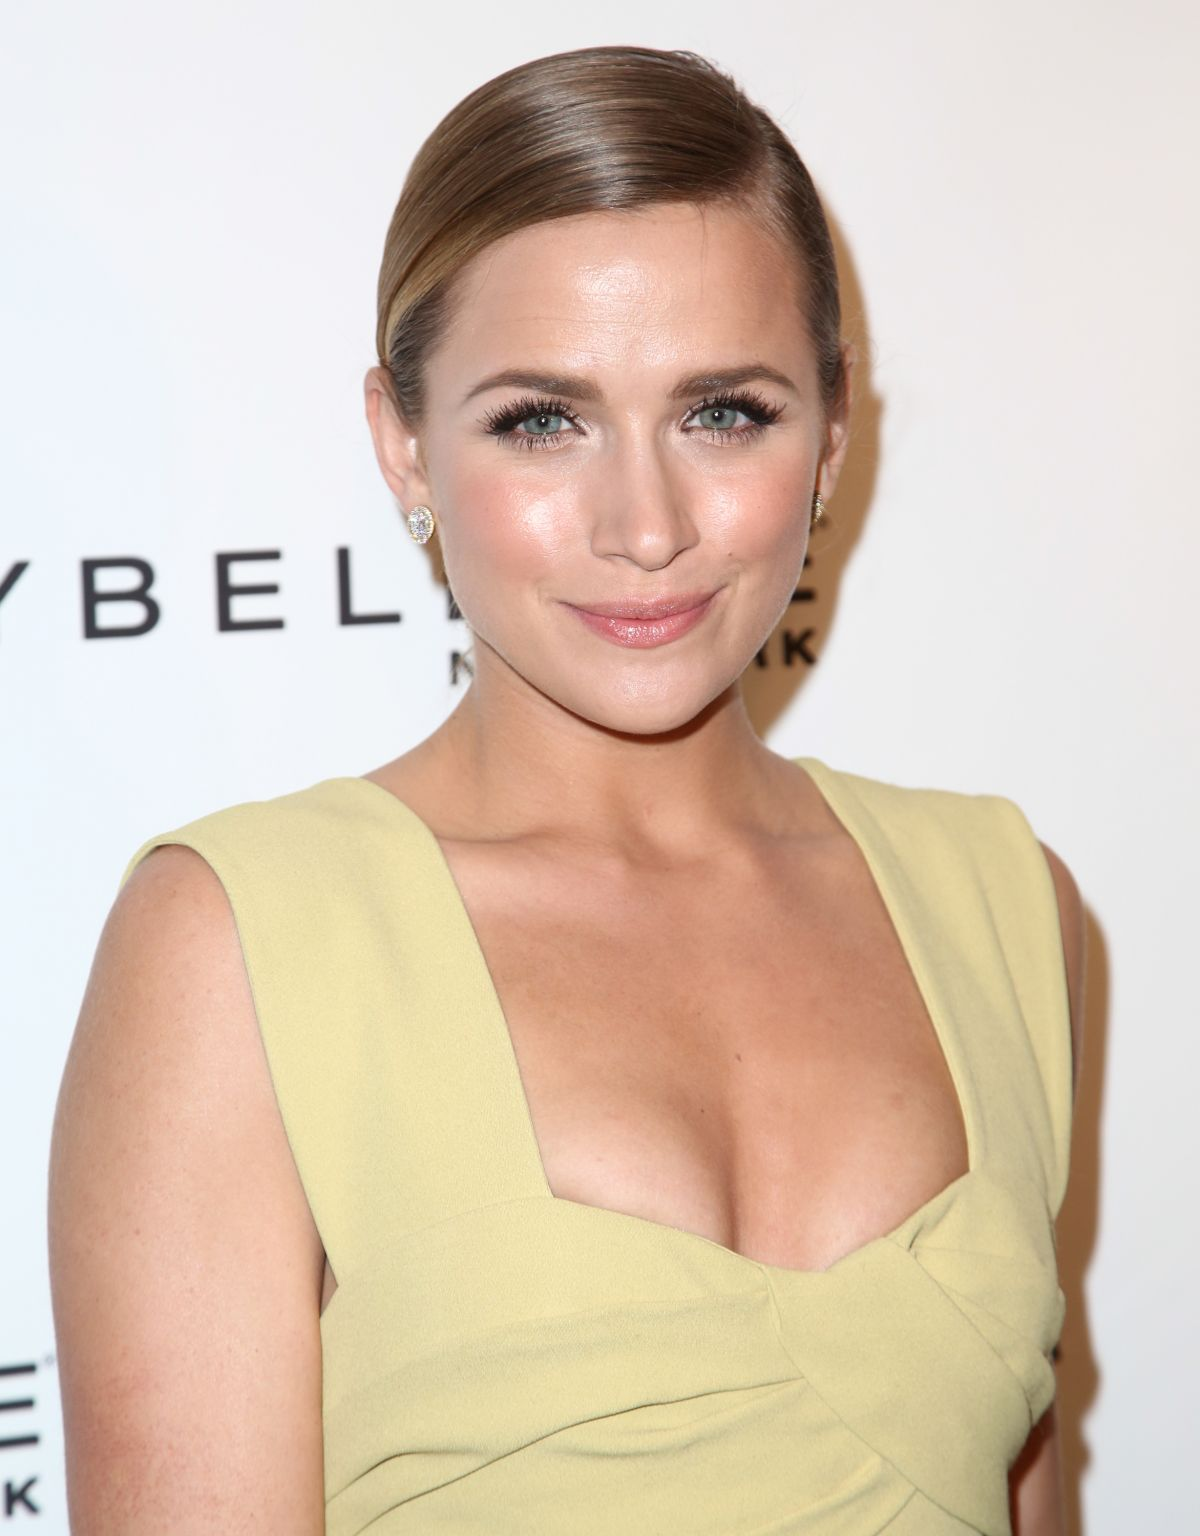 shantel vansanten photoshootsshantel vansanten reddit, shantel vansanten site, shantel vansanten gif, shantel vansanten shooter, shantel vansanten fansite, shantel vansanten vk, shantel vansanten twitter, shantel vansanten fan, shantel vansanten photoshoots, shantel vansanten getty images, shantel vansanten listal, shantel vansanten meghan markle, shantel vansanten gray card, shantel vansanten tumblr gif, shantel vansanten wallpaper hd, shantel vansanten and jon fletcher, shantel vansanten sports illustrated, shantel vansanten model, shantel vansanten instagram, shantel vansanten and robert buckley